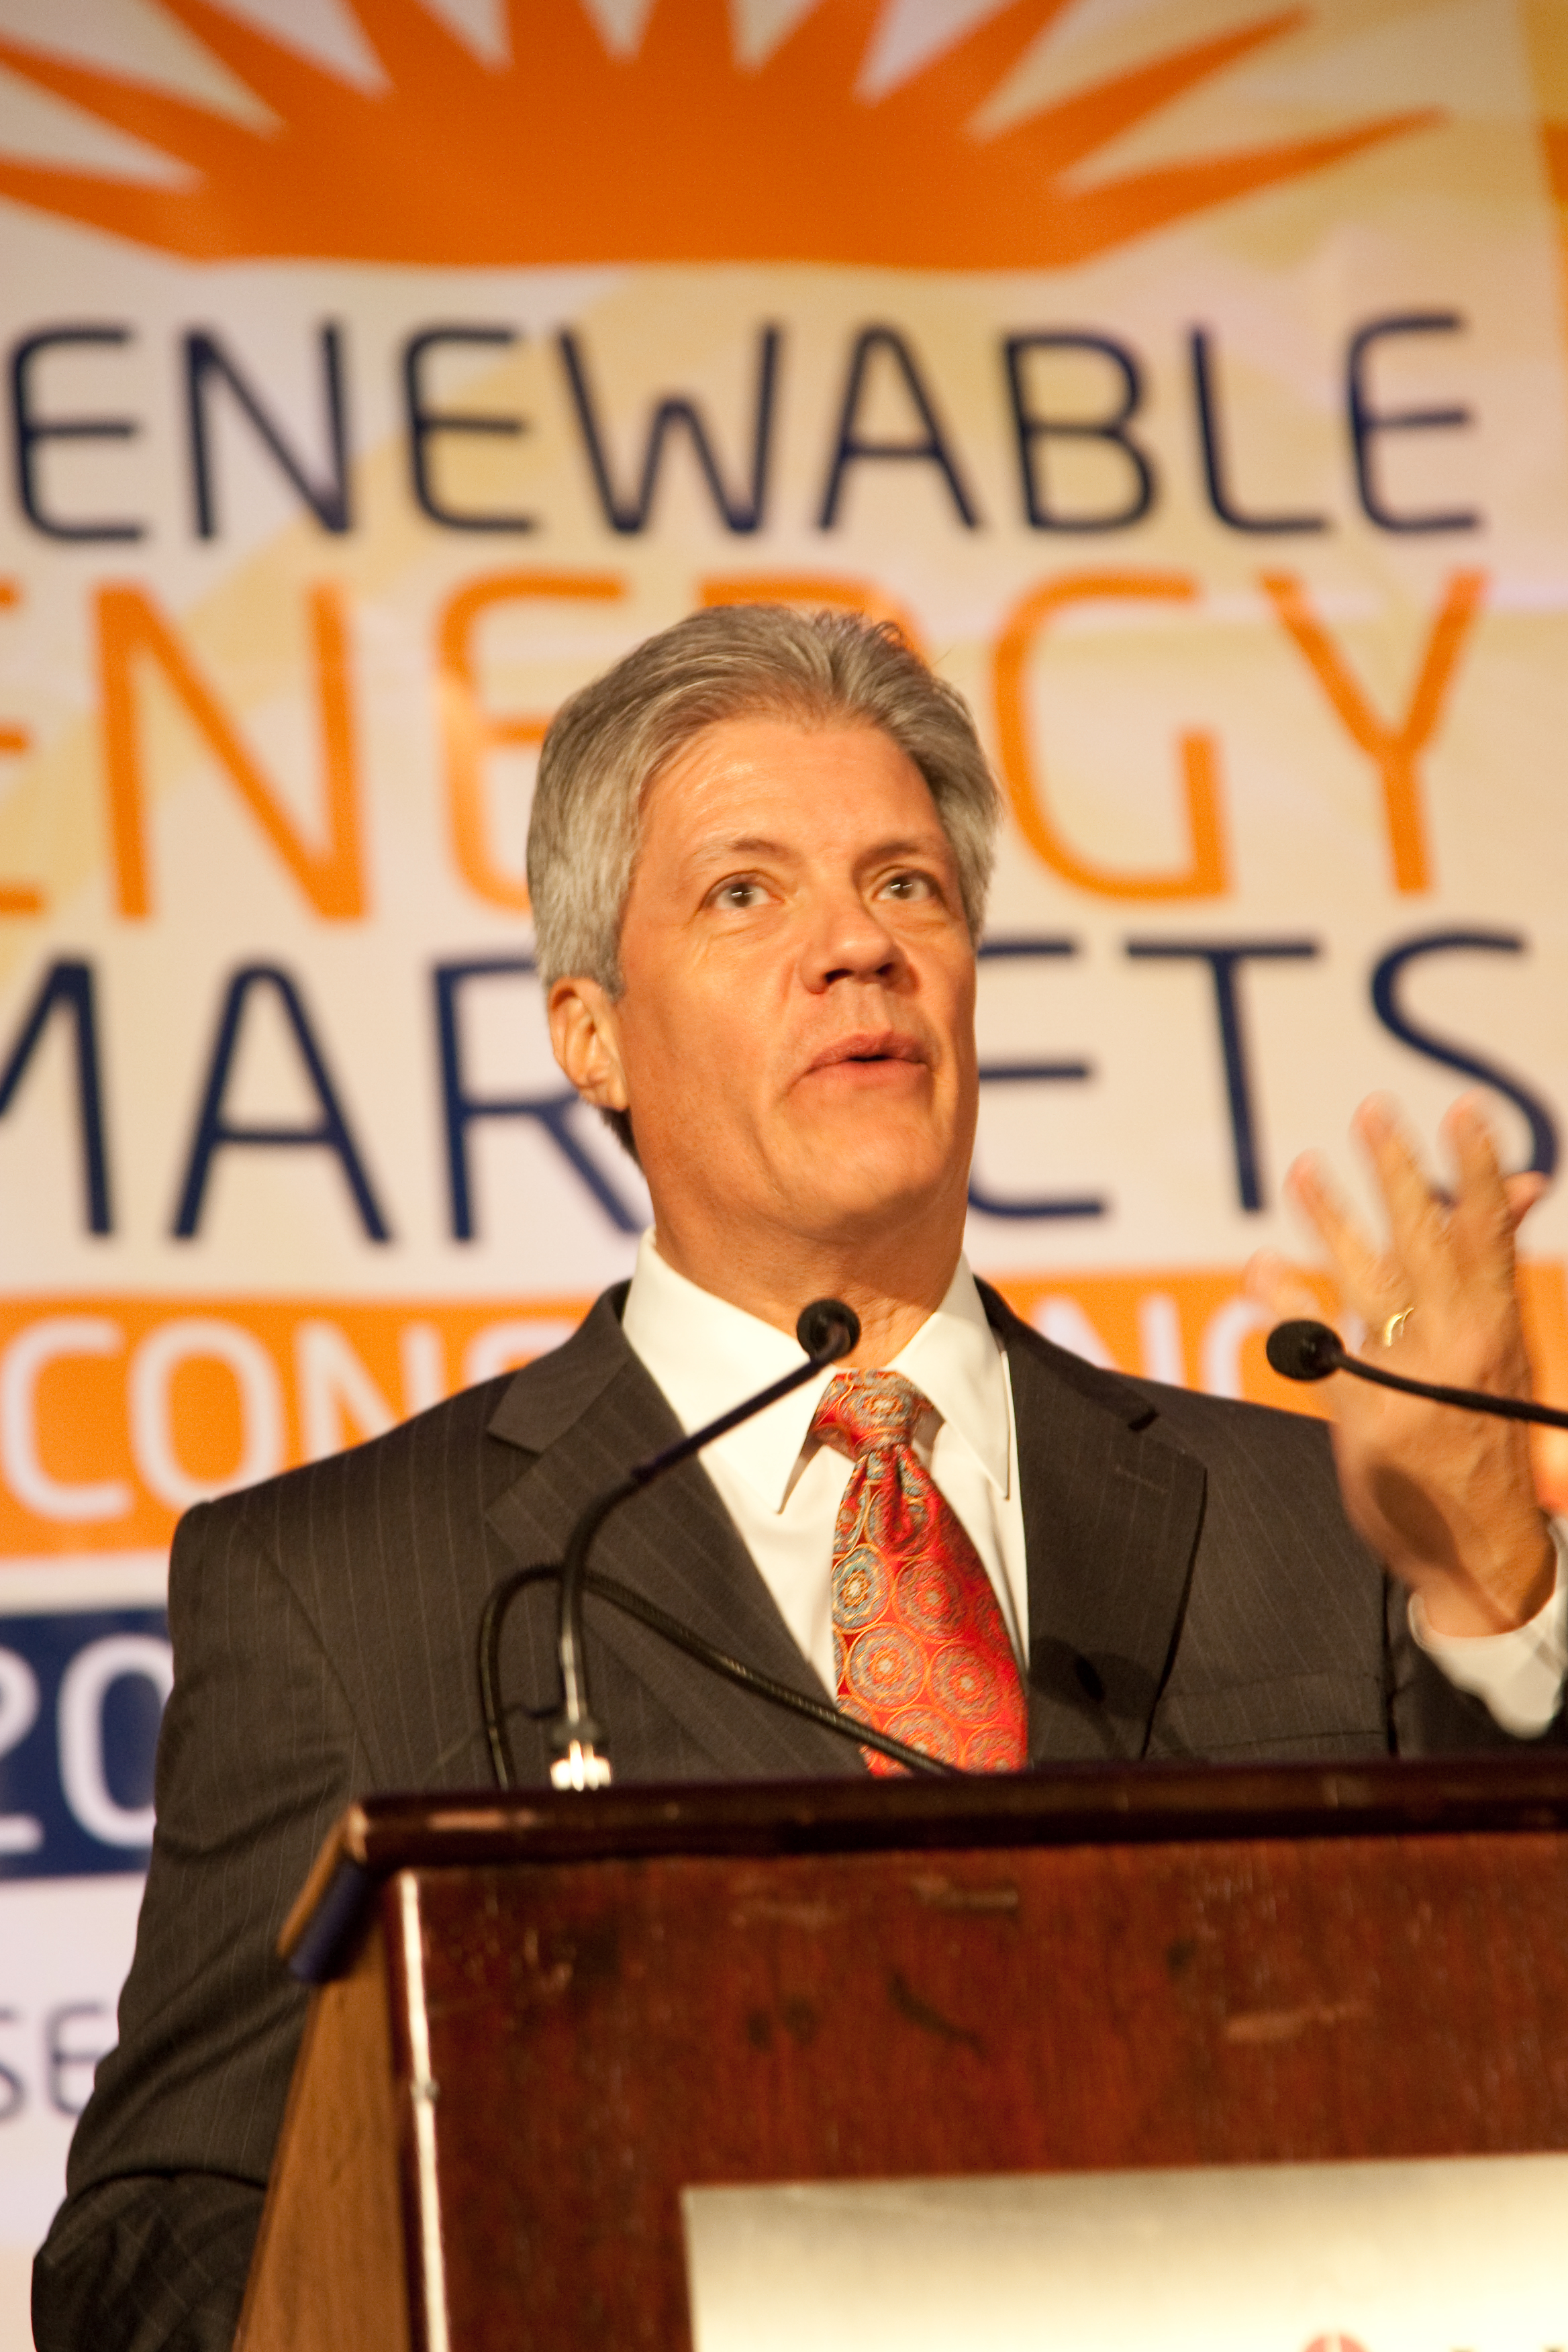 2090914renewableenergy20322.jpg